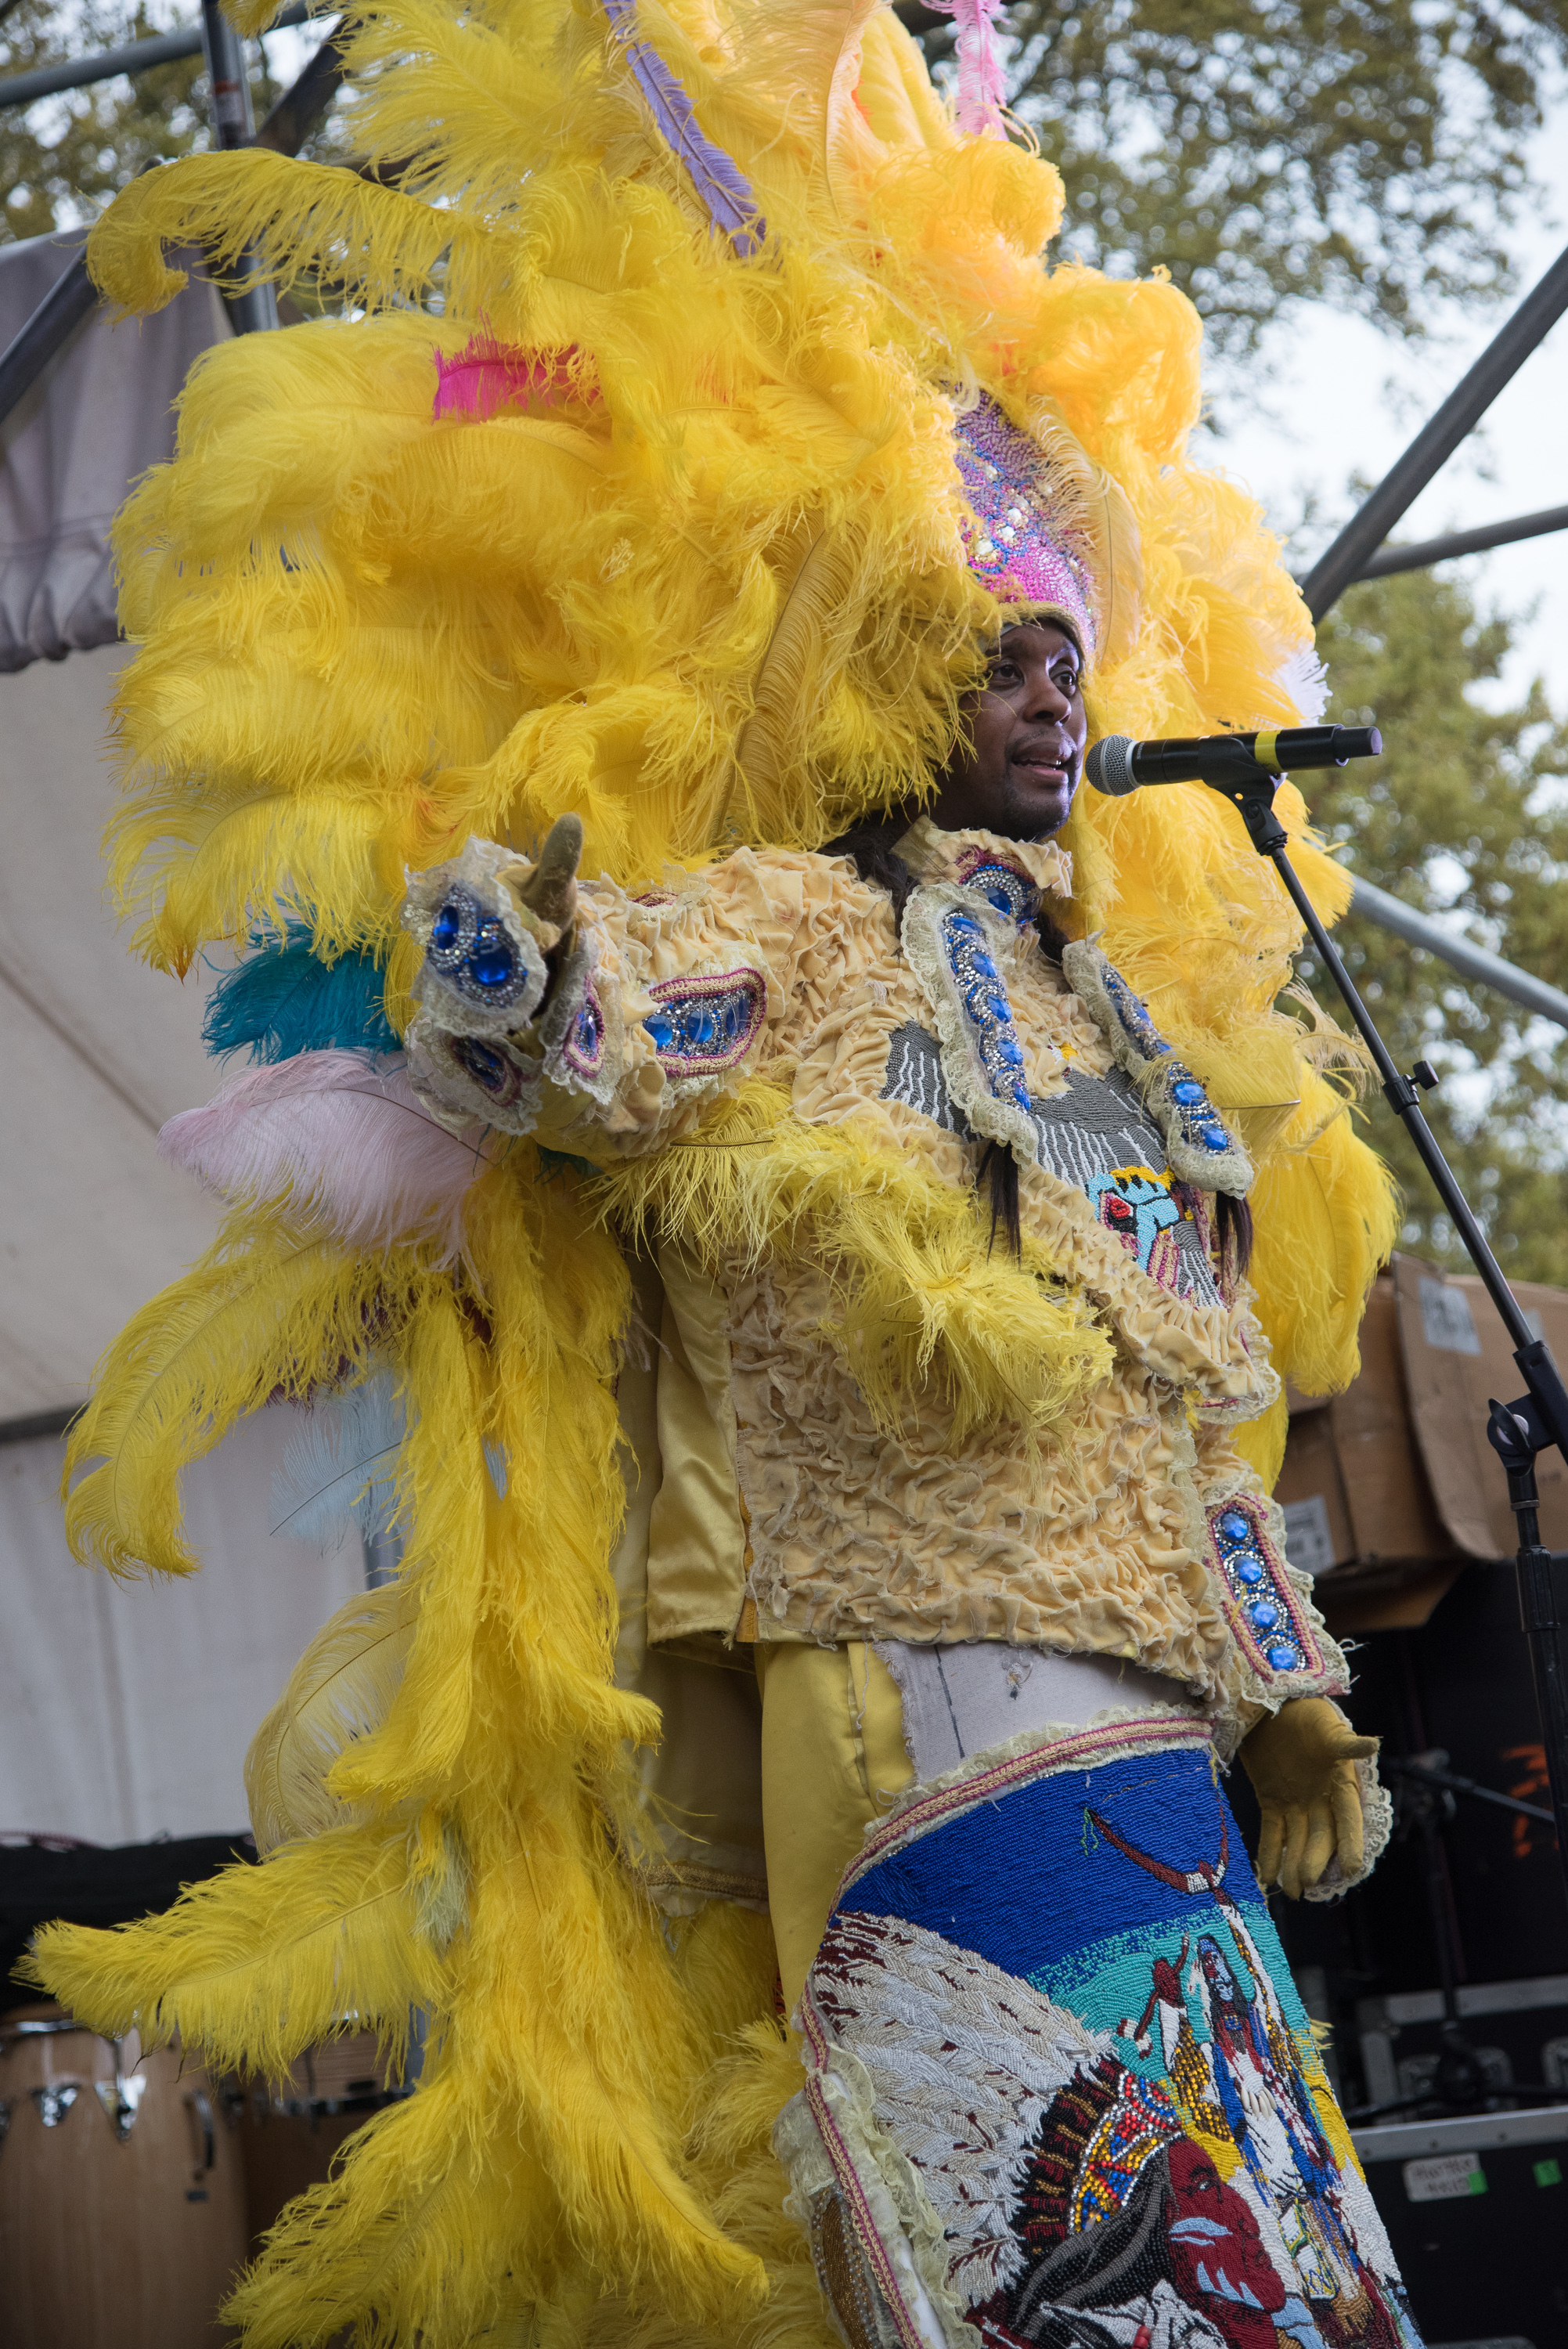 2015 Congo Square Rhythms Festival, New Orleans, music, The Wild Magnolias featuring Monk Boudreaux and Bo Dollis Jr.